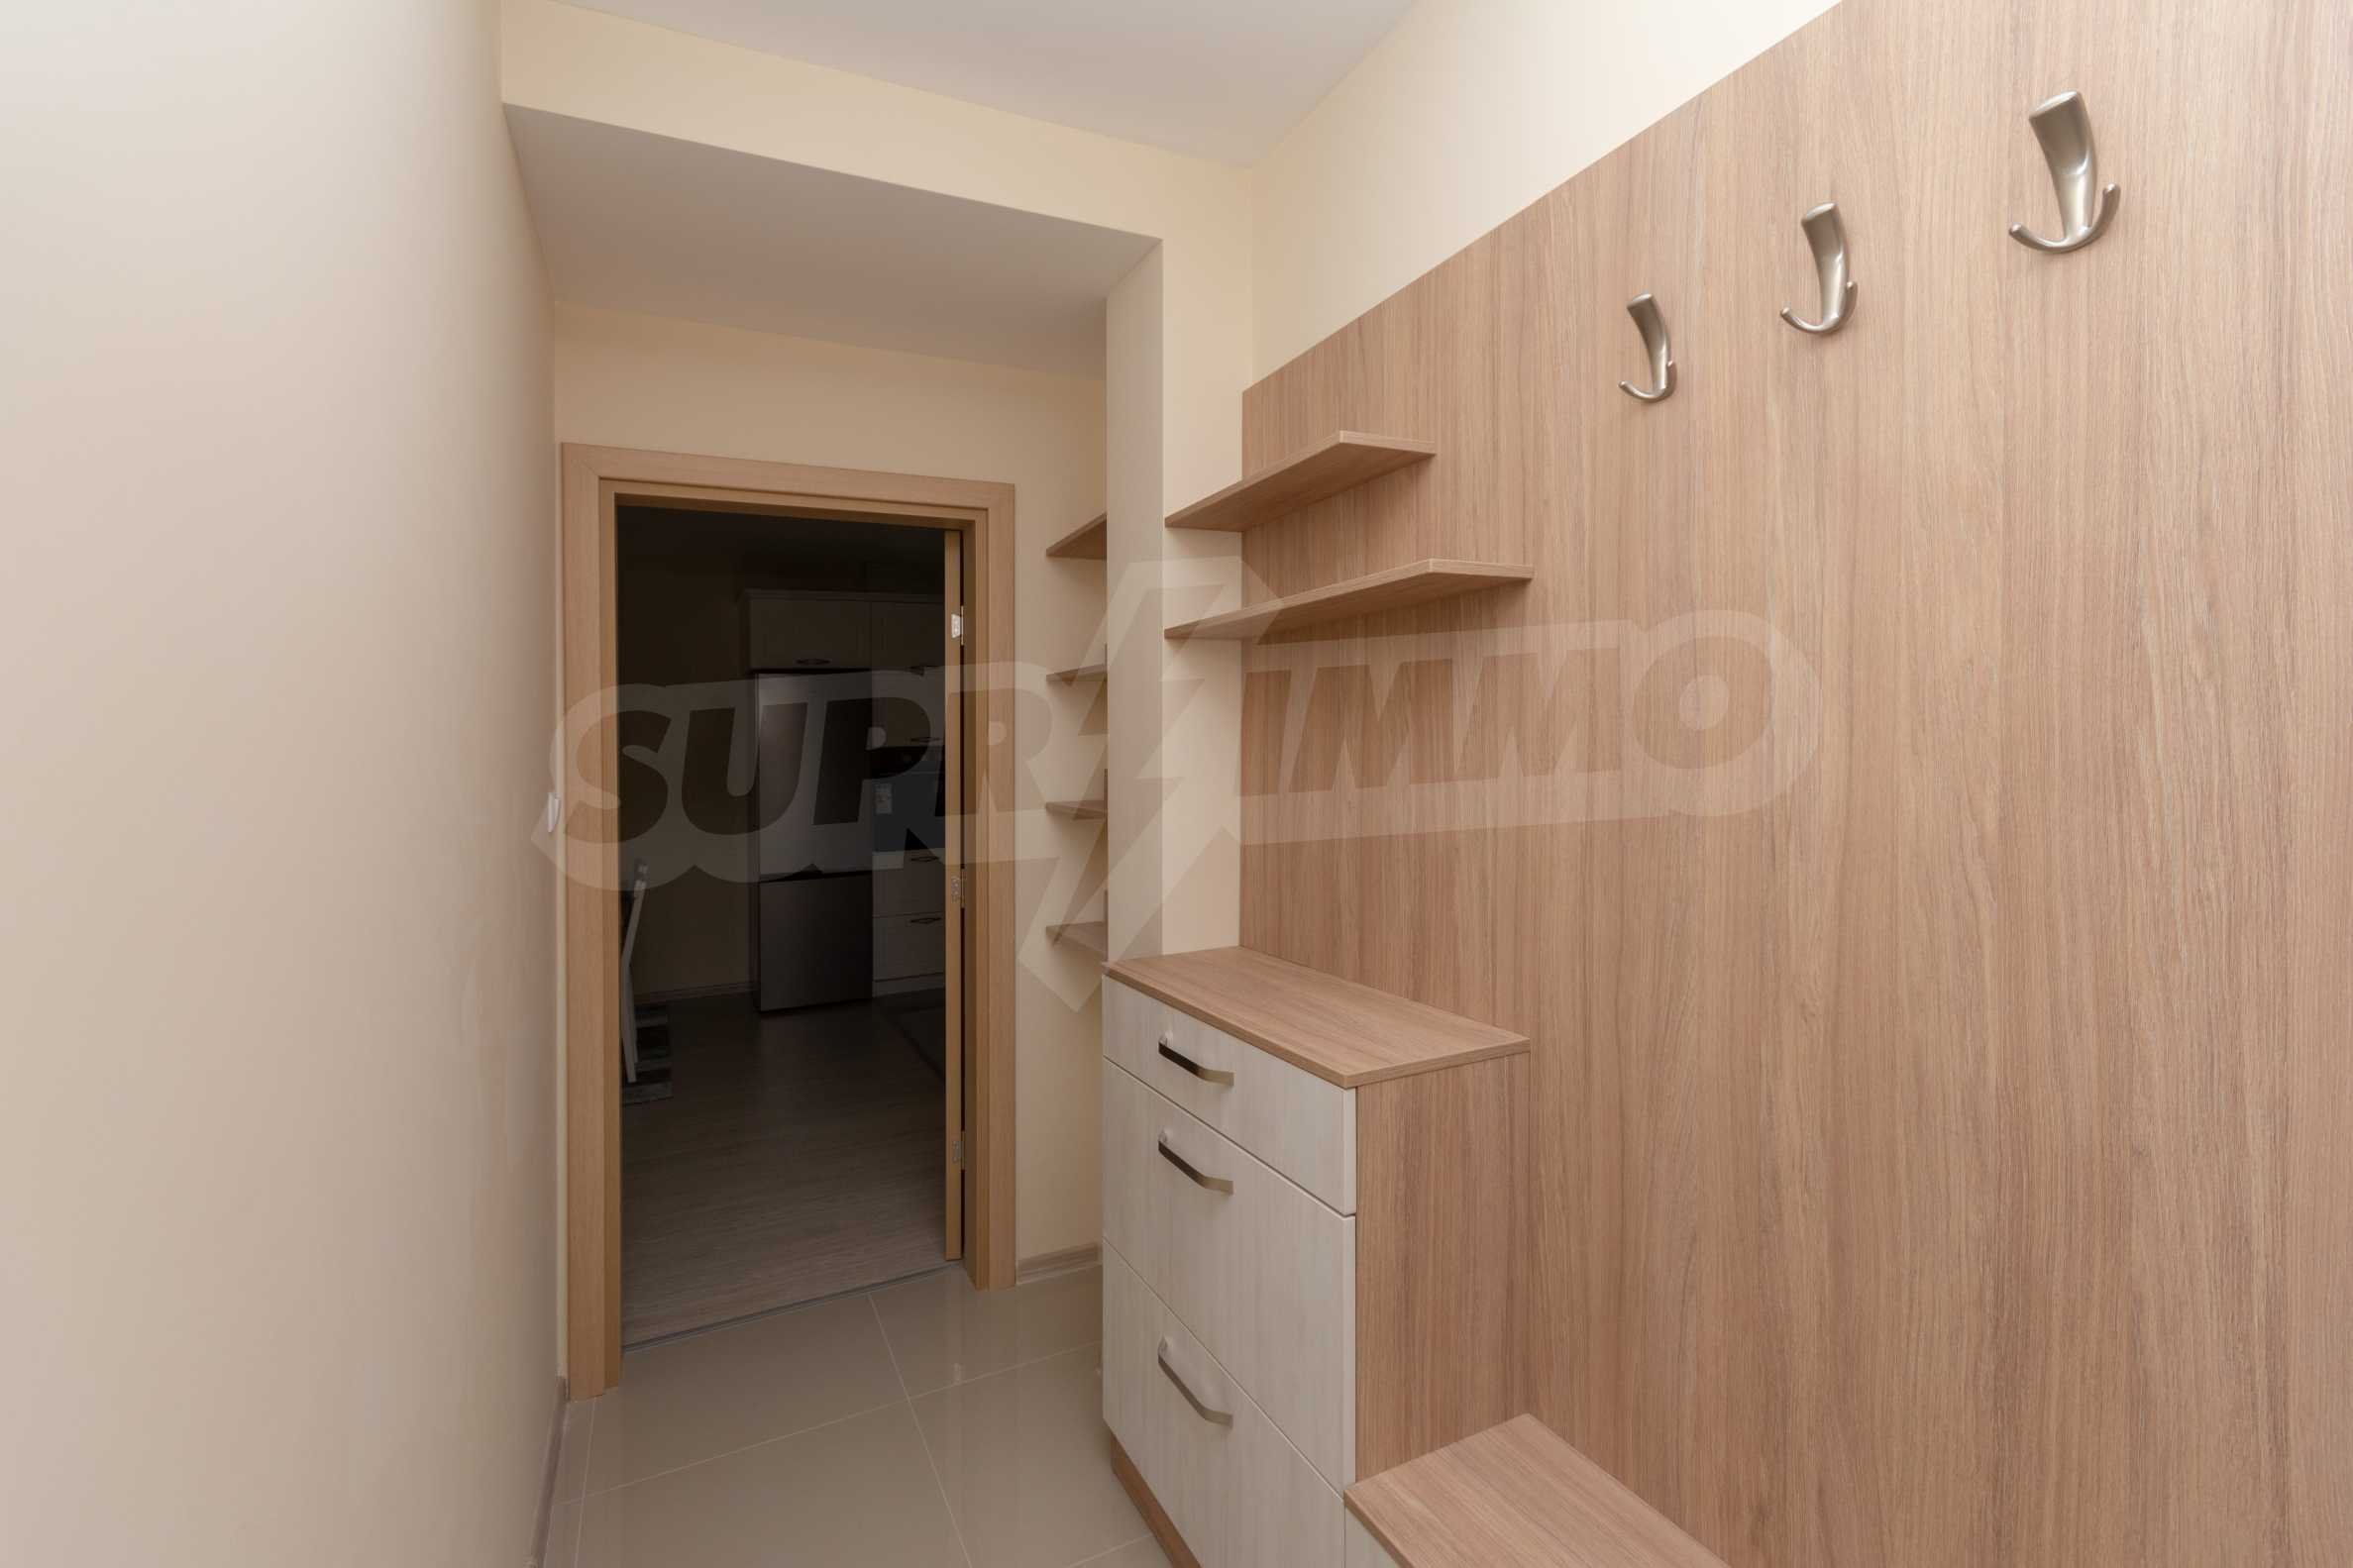 One bedroom apartment in a luxury residential building in a communicative location in Plovdiv 10